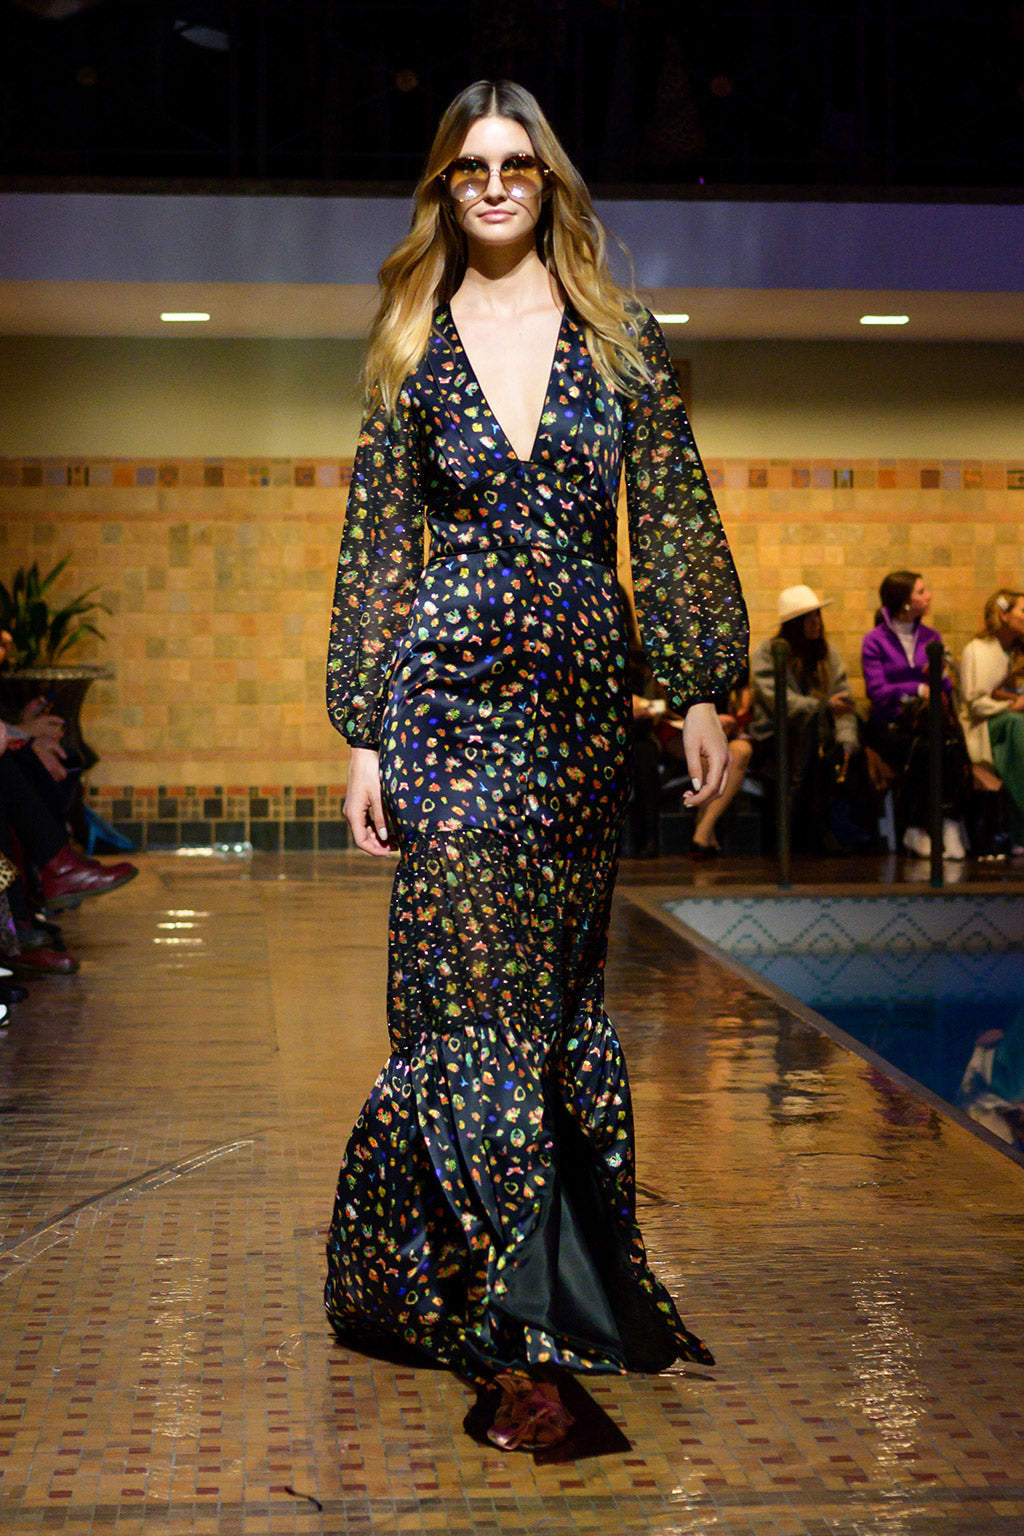 Cynthia Rowley Fall 2019 look 17 featuring a maxi dress with deep V-neck and long bell sleeves in a fruit print